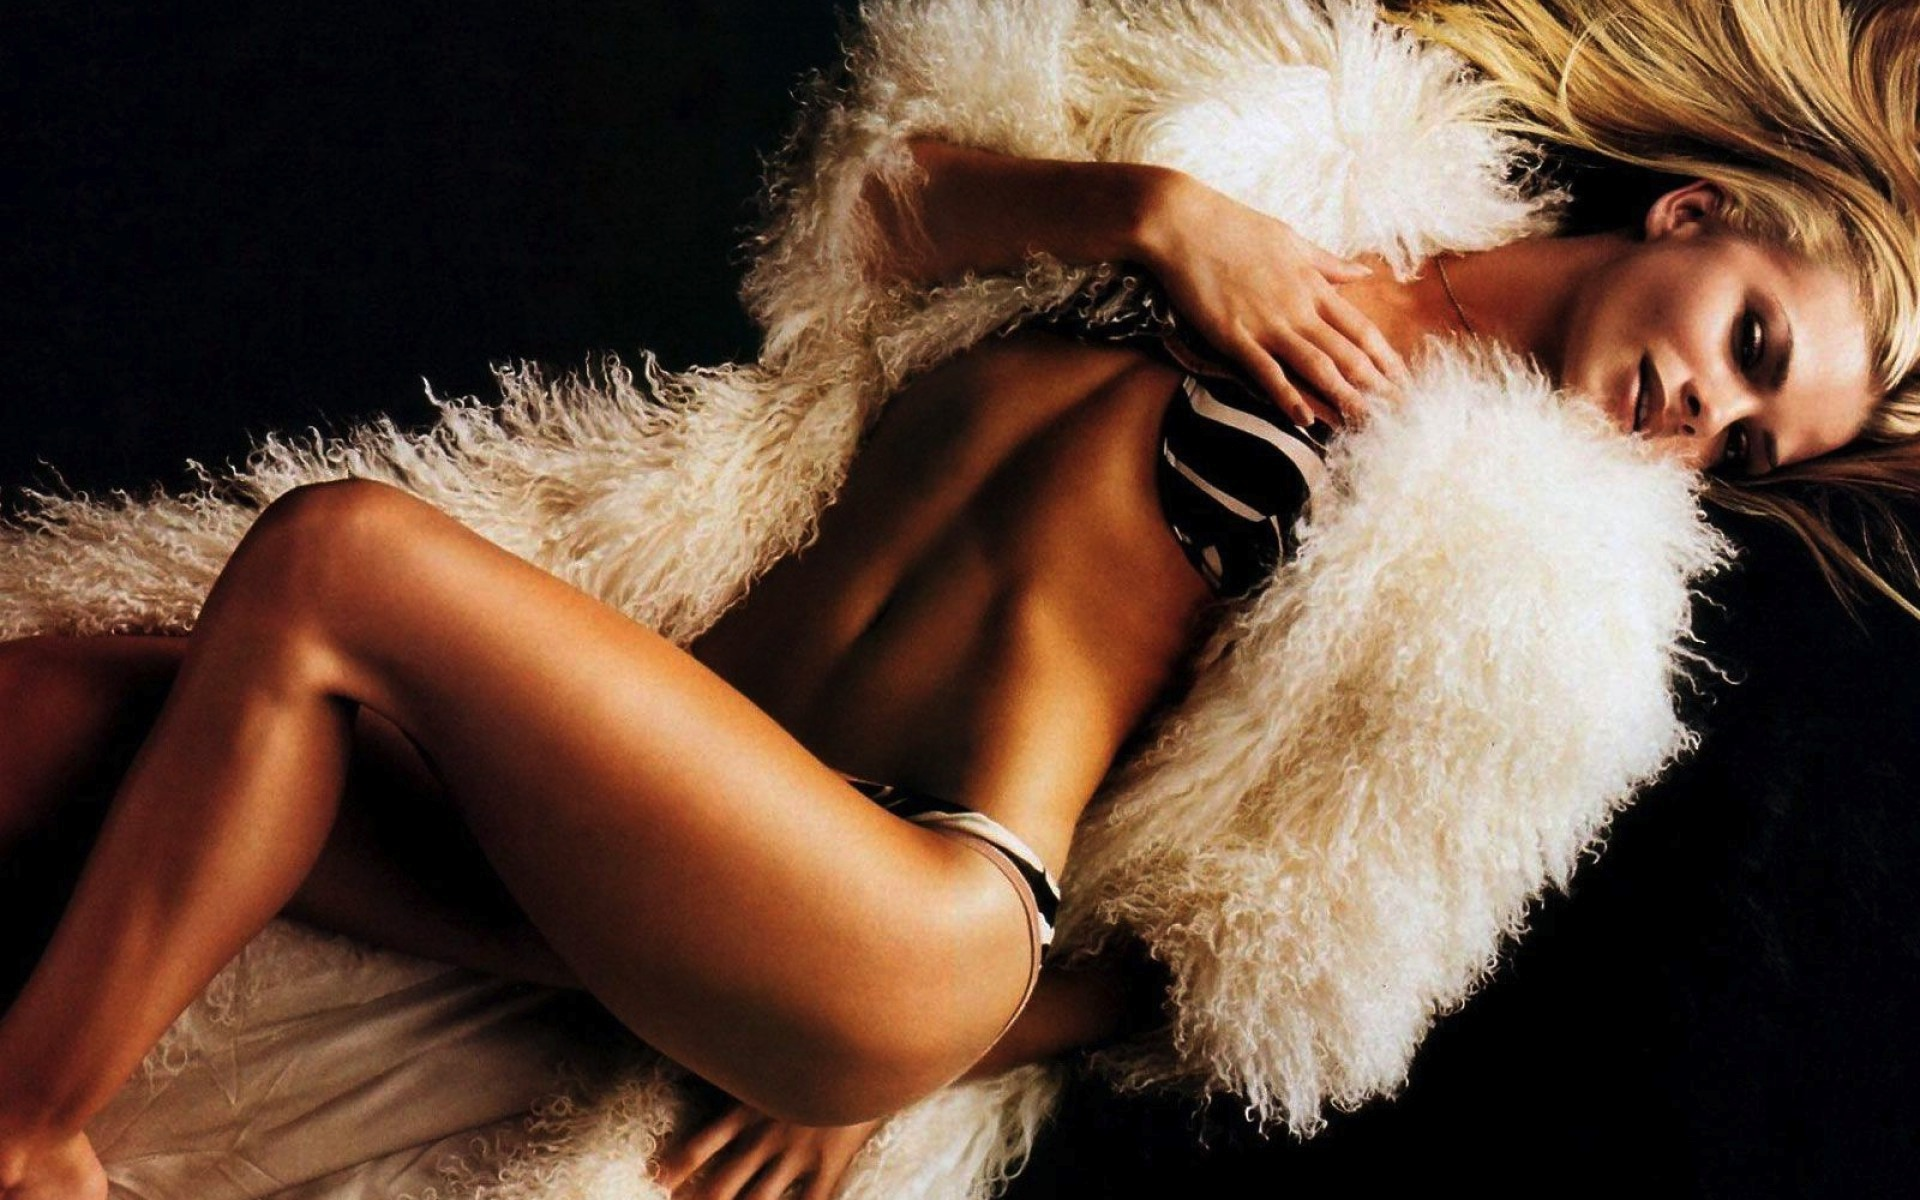 vancouver escorts Agency By Angelsallure